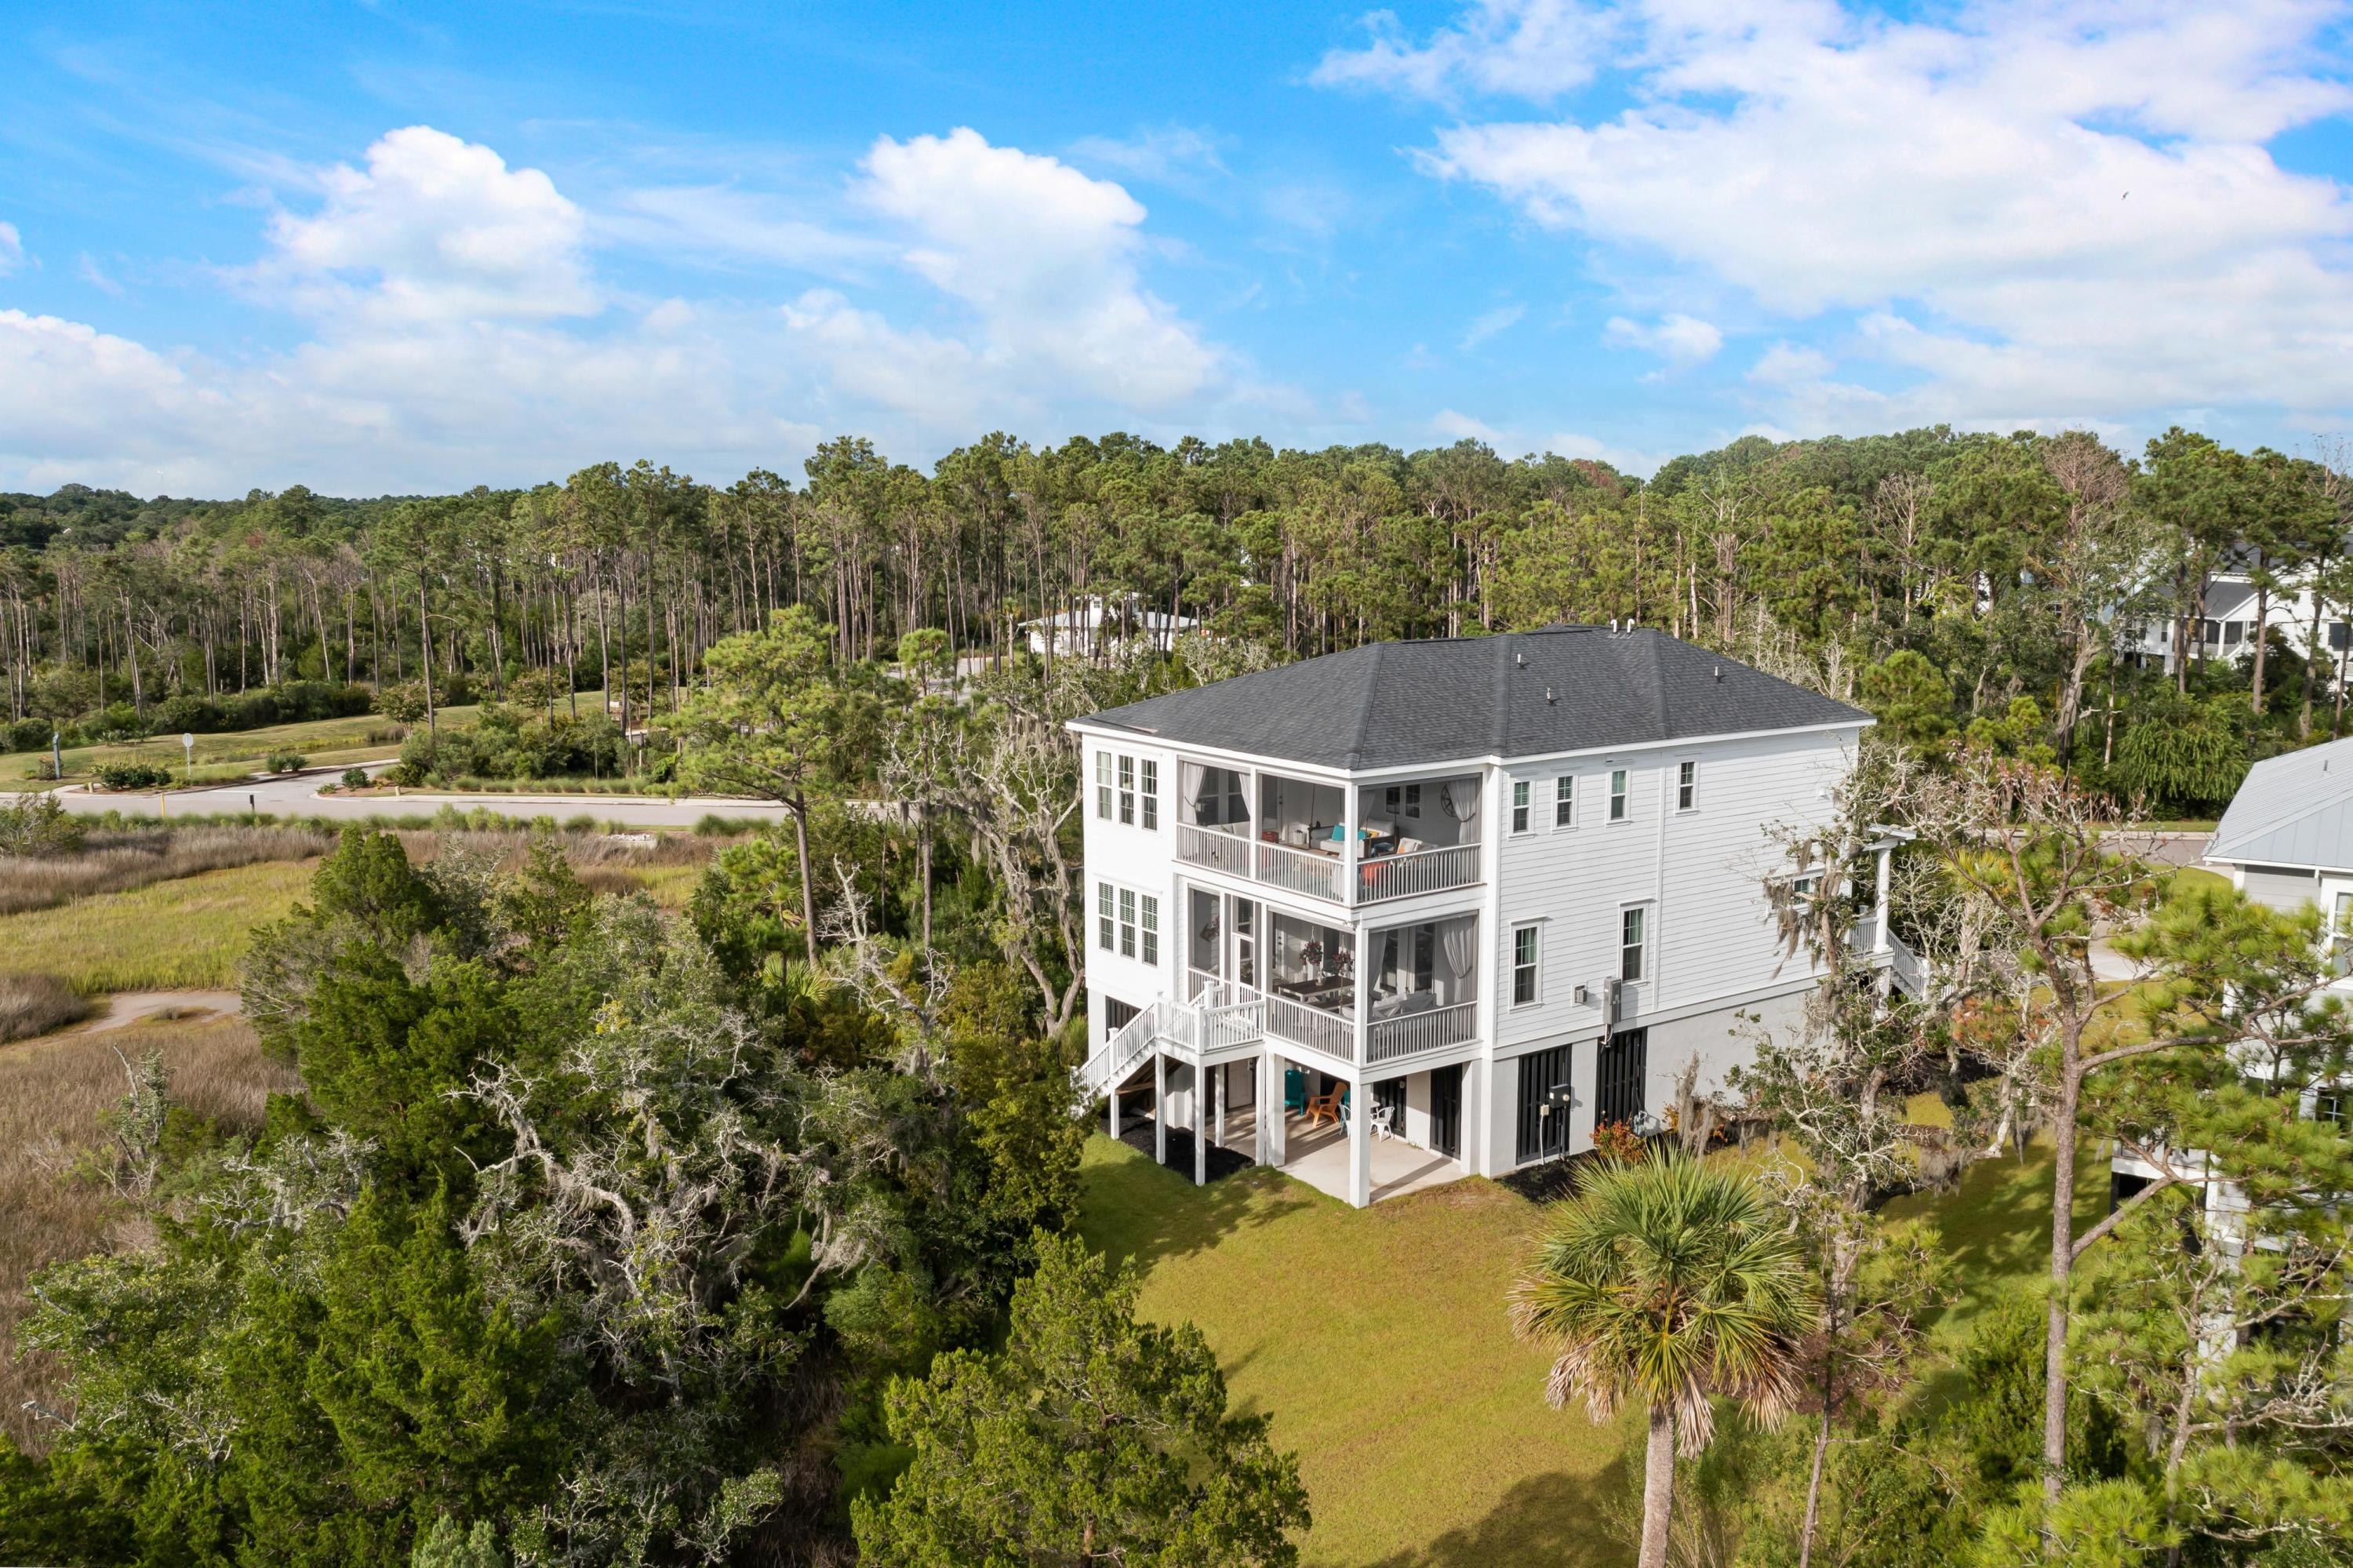 Stratton by the Sound Homes For Sale - 1400 Stratton, Mount Pleasant, SC - 40